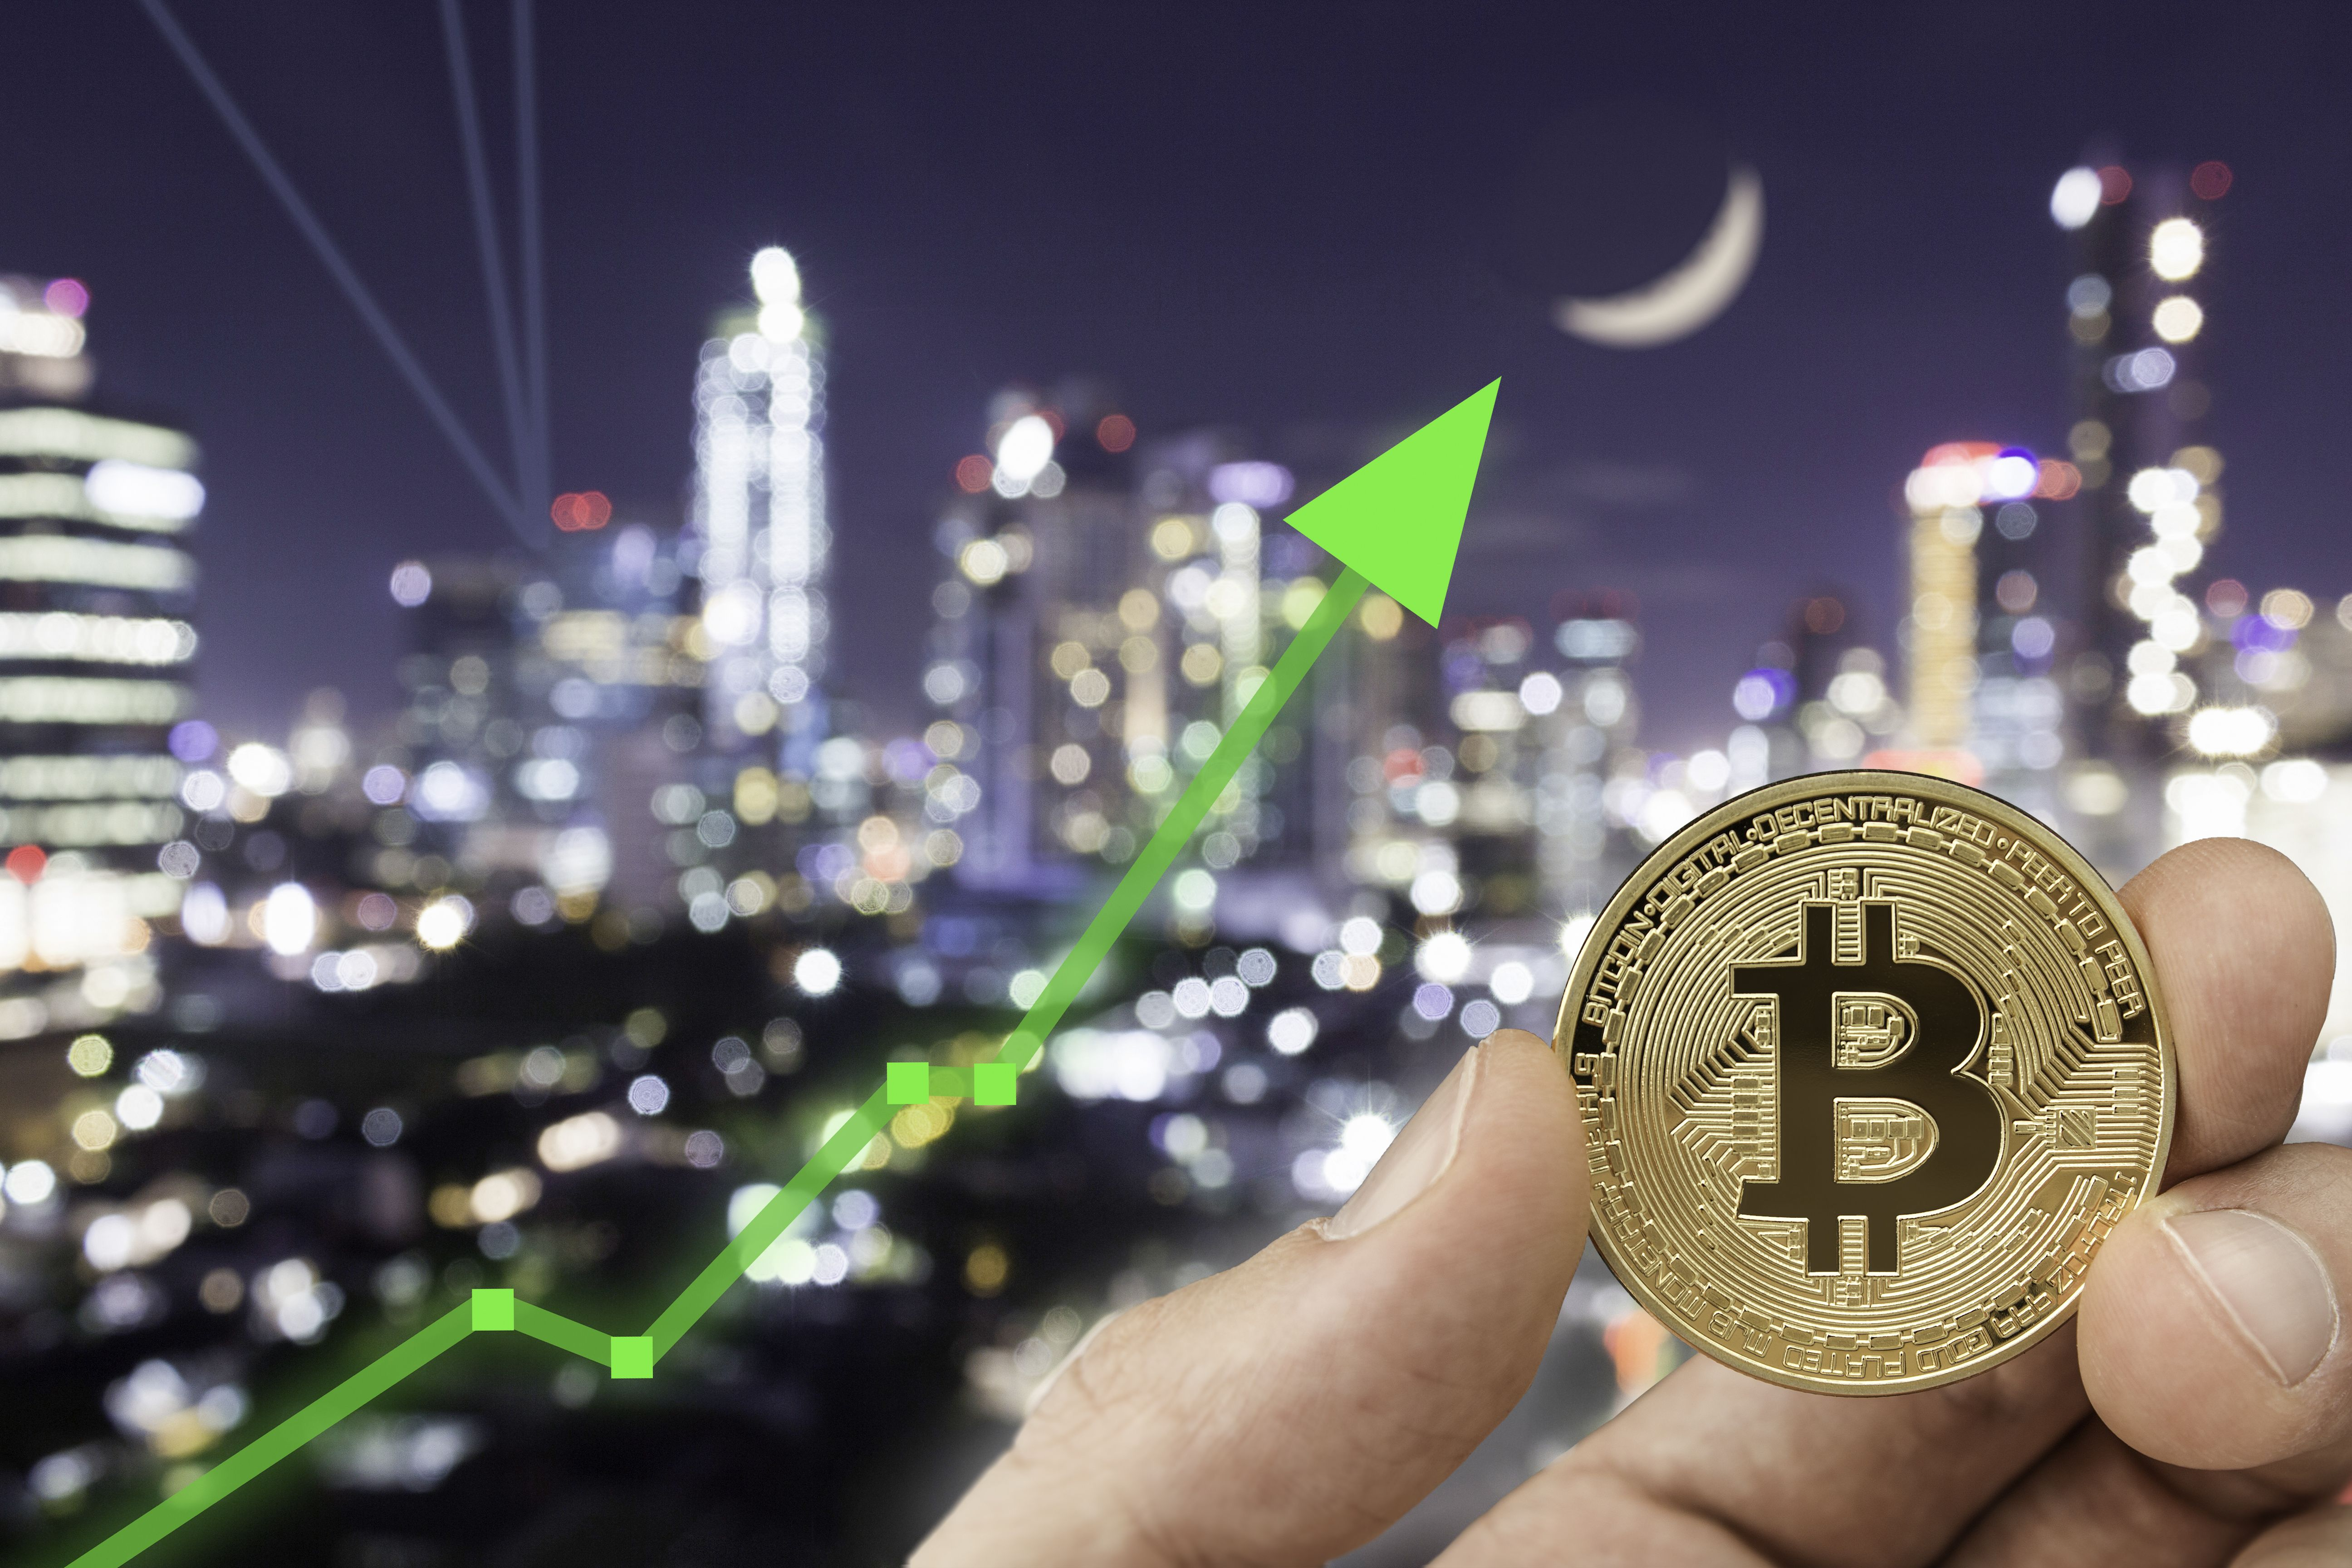 /bitcoins-market-cycle-peak-is-a-lot-closer-than-you-think-q11m35mb feature image